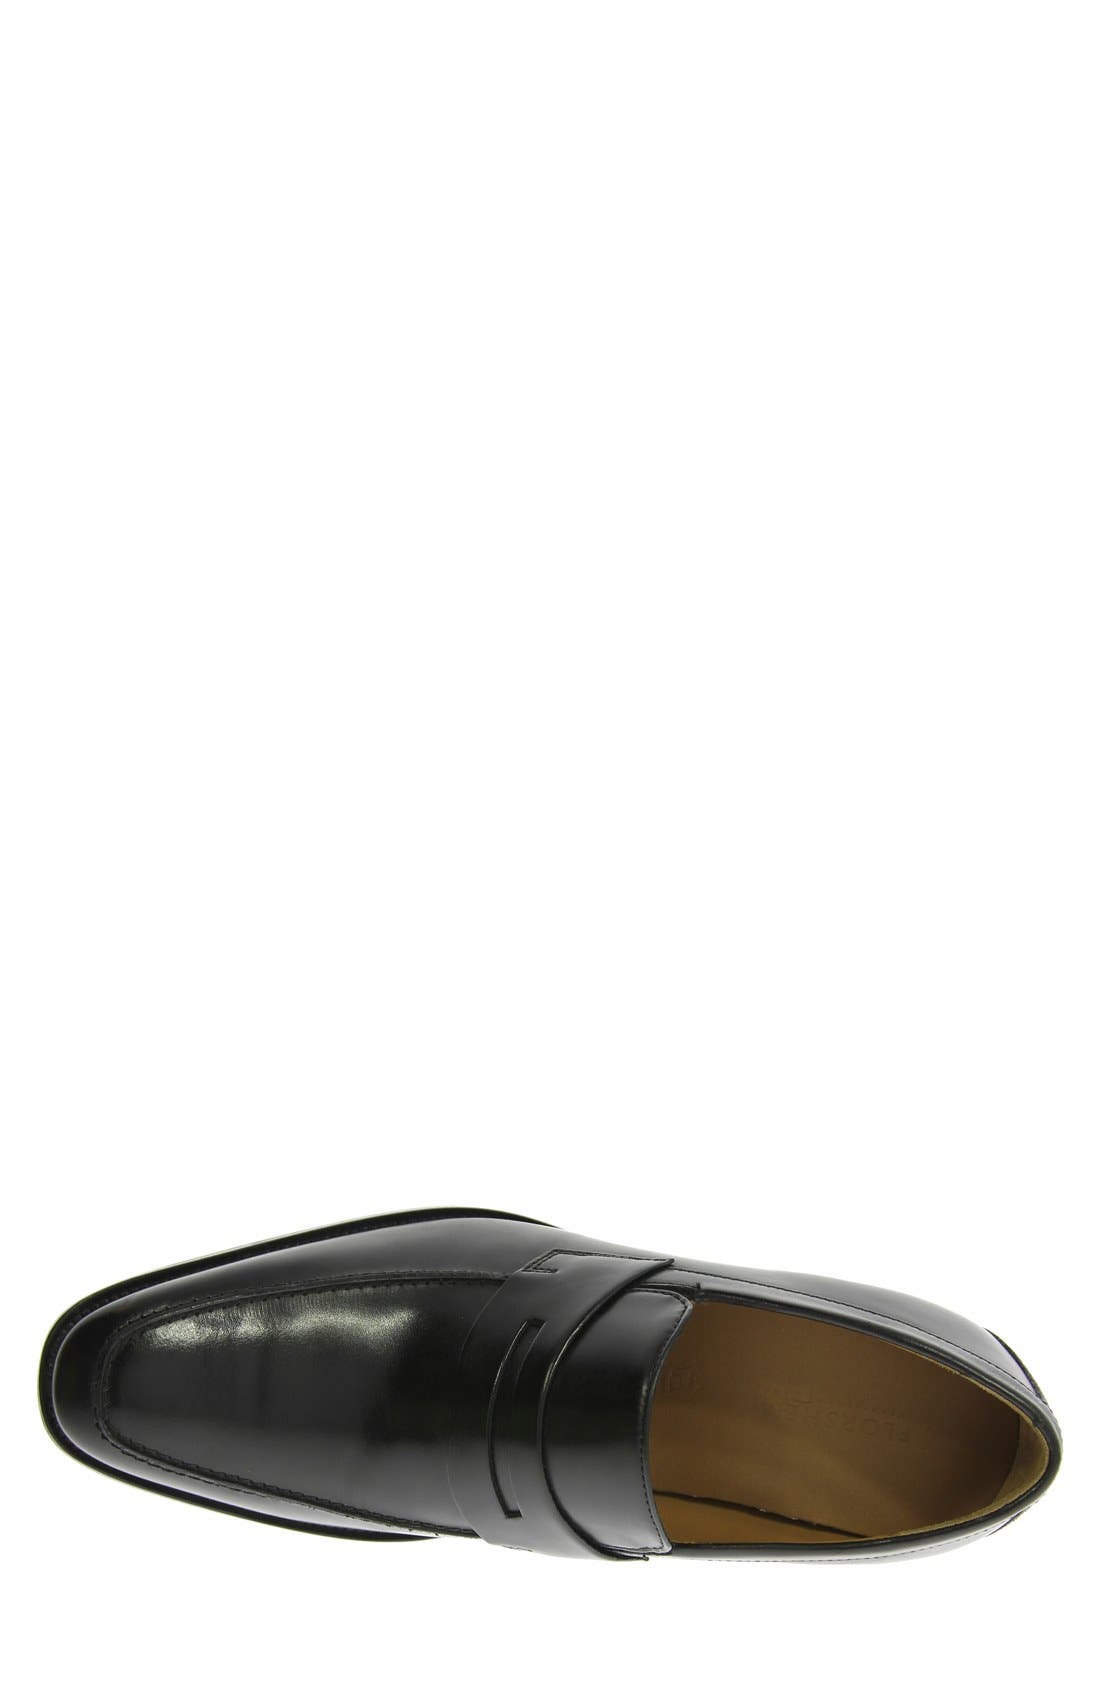 'Sabato' Penny Loafer,                             Alternate thumbnail 3, color,